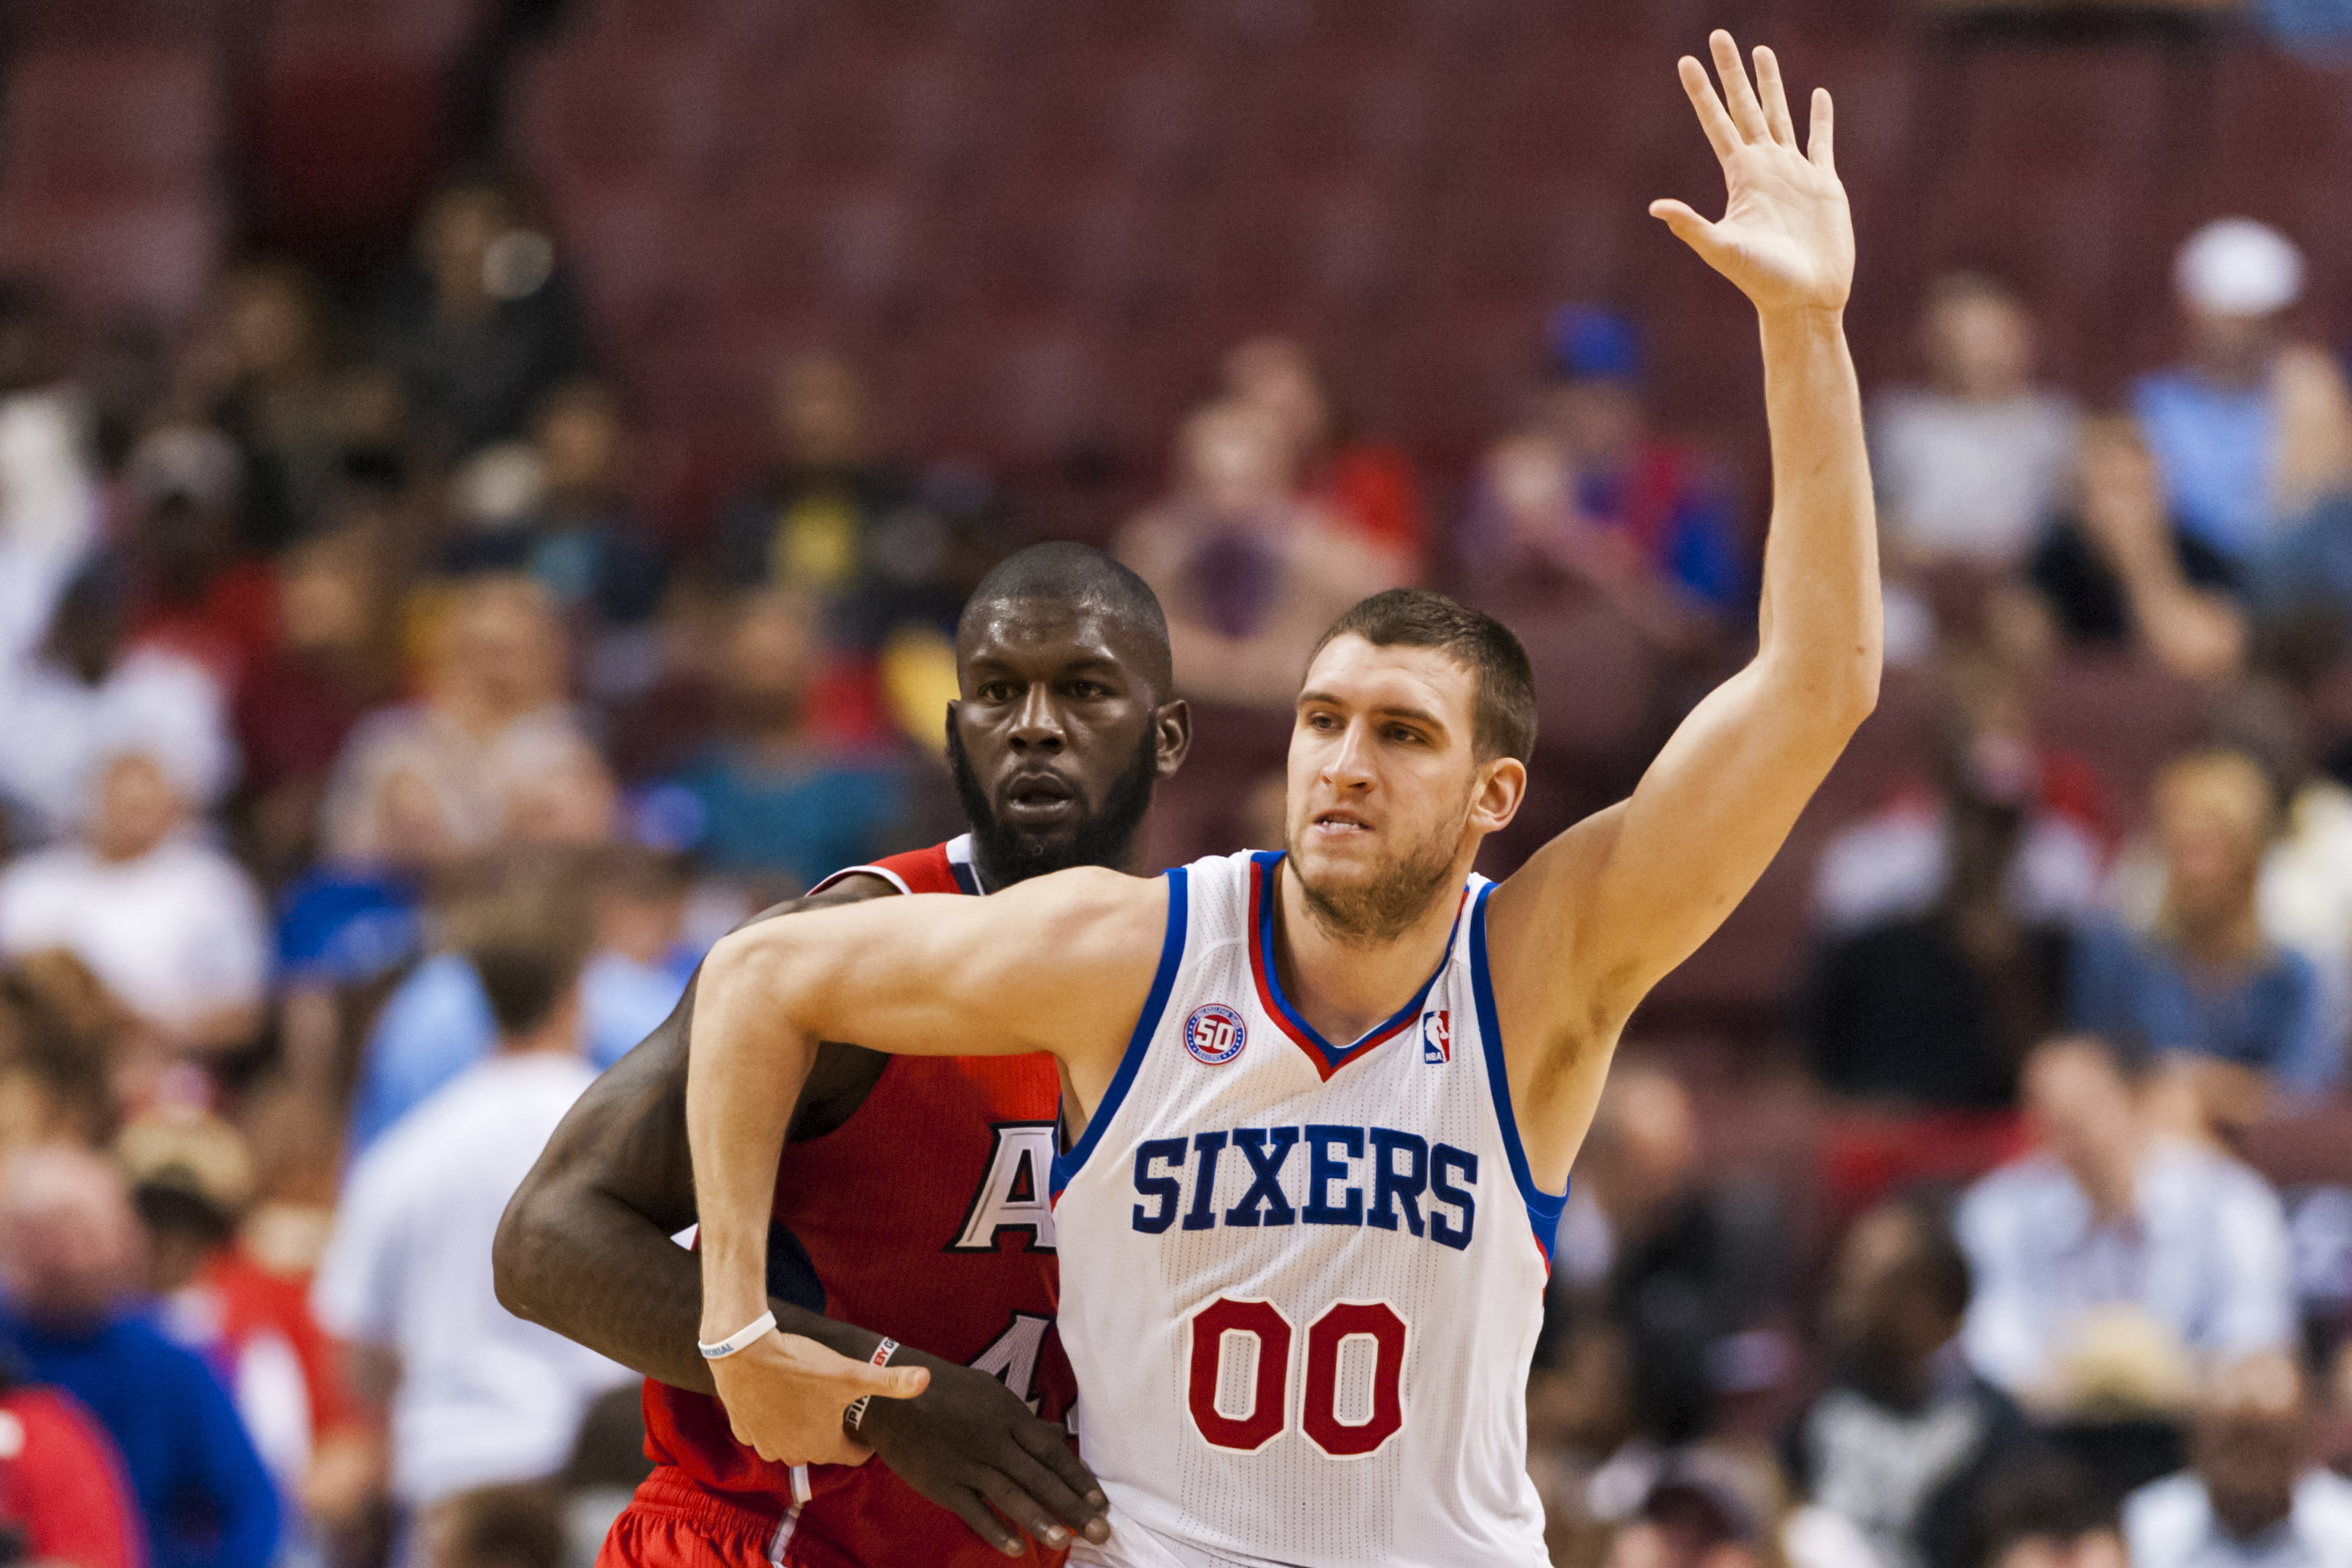 Sixers center Spencer Hawes was fined $15,000 for playing in a alumni game. (USA Today Sports)